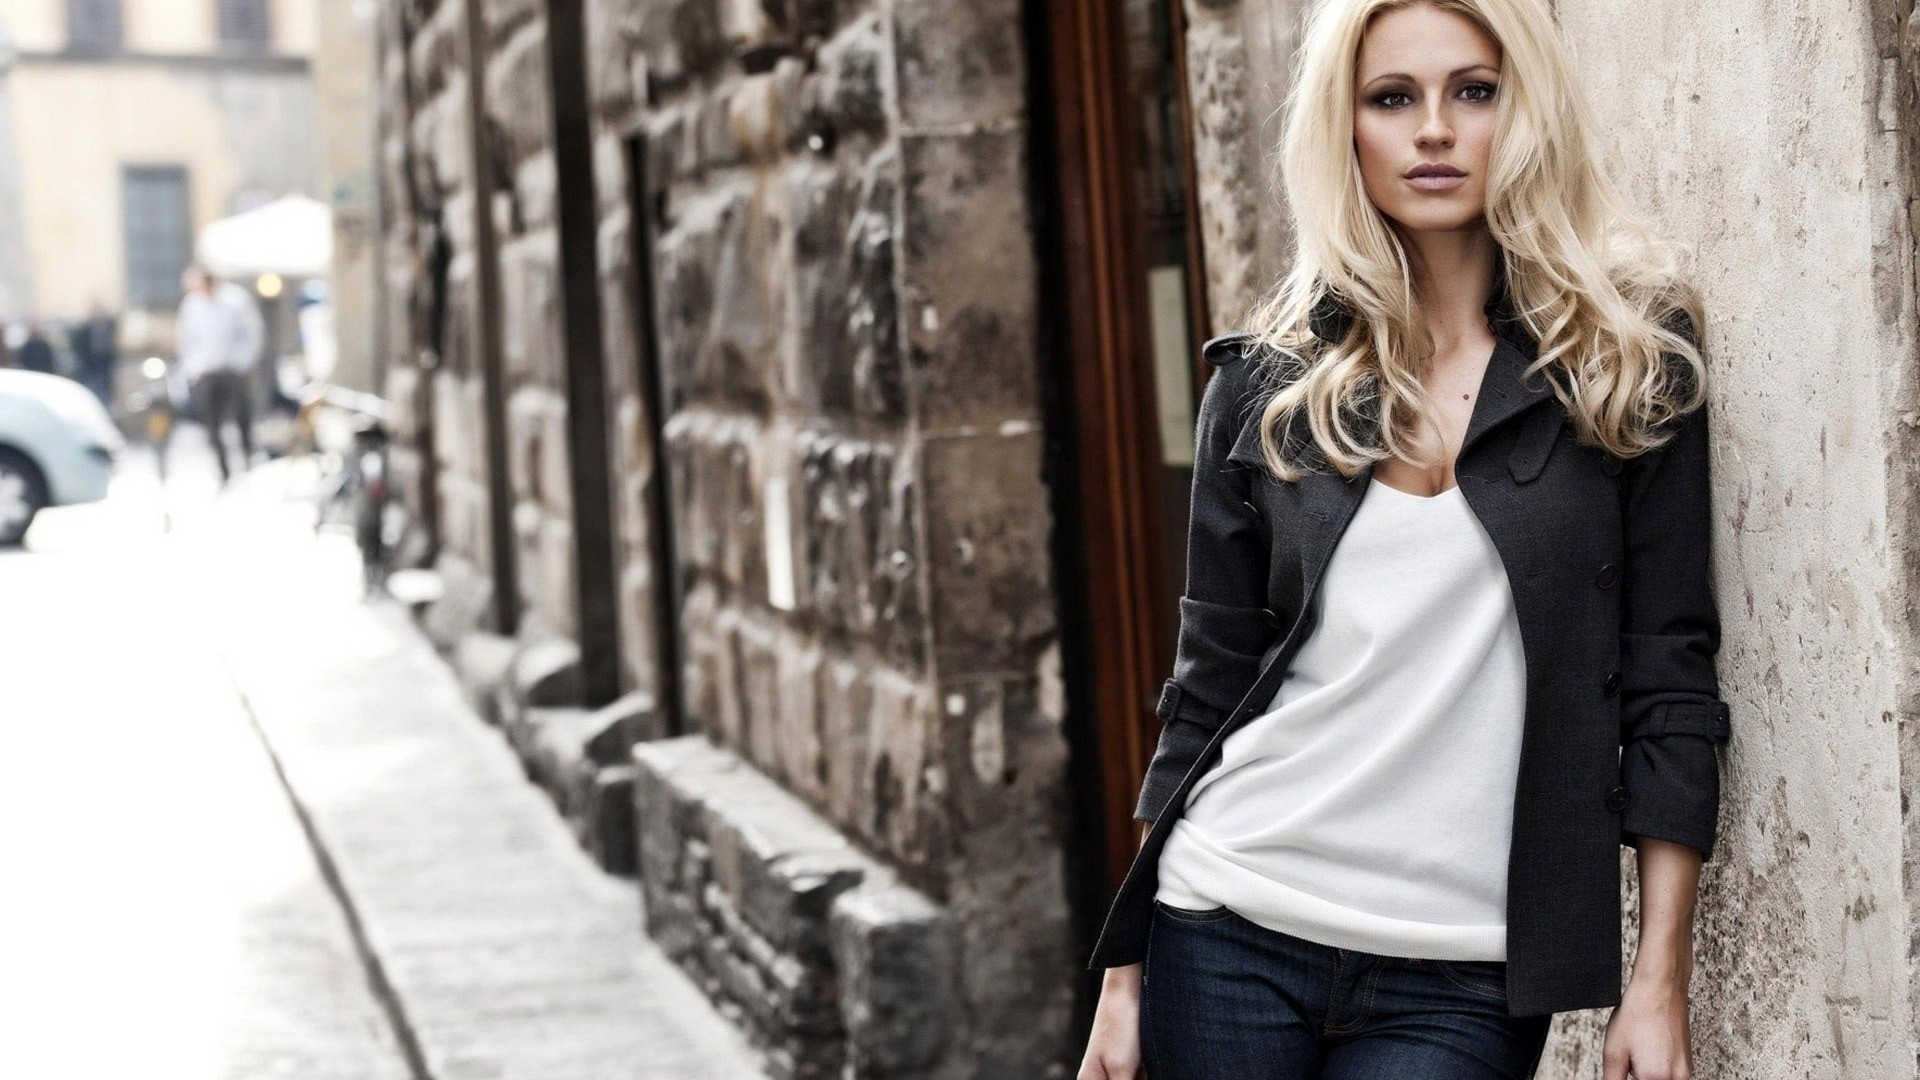 blondes woman jeans cleavage HD Wallpaper